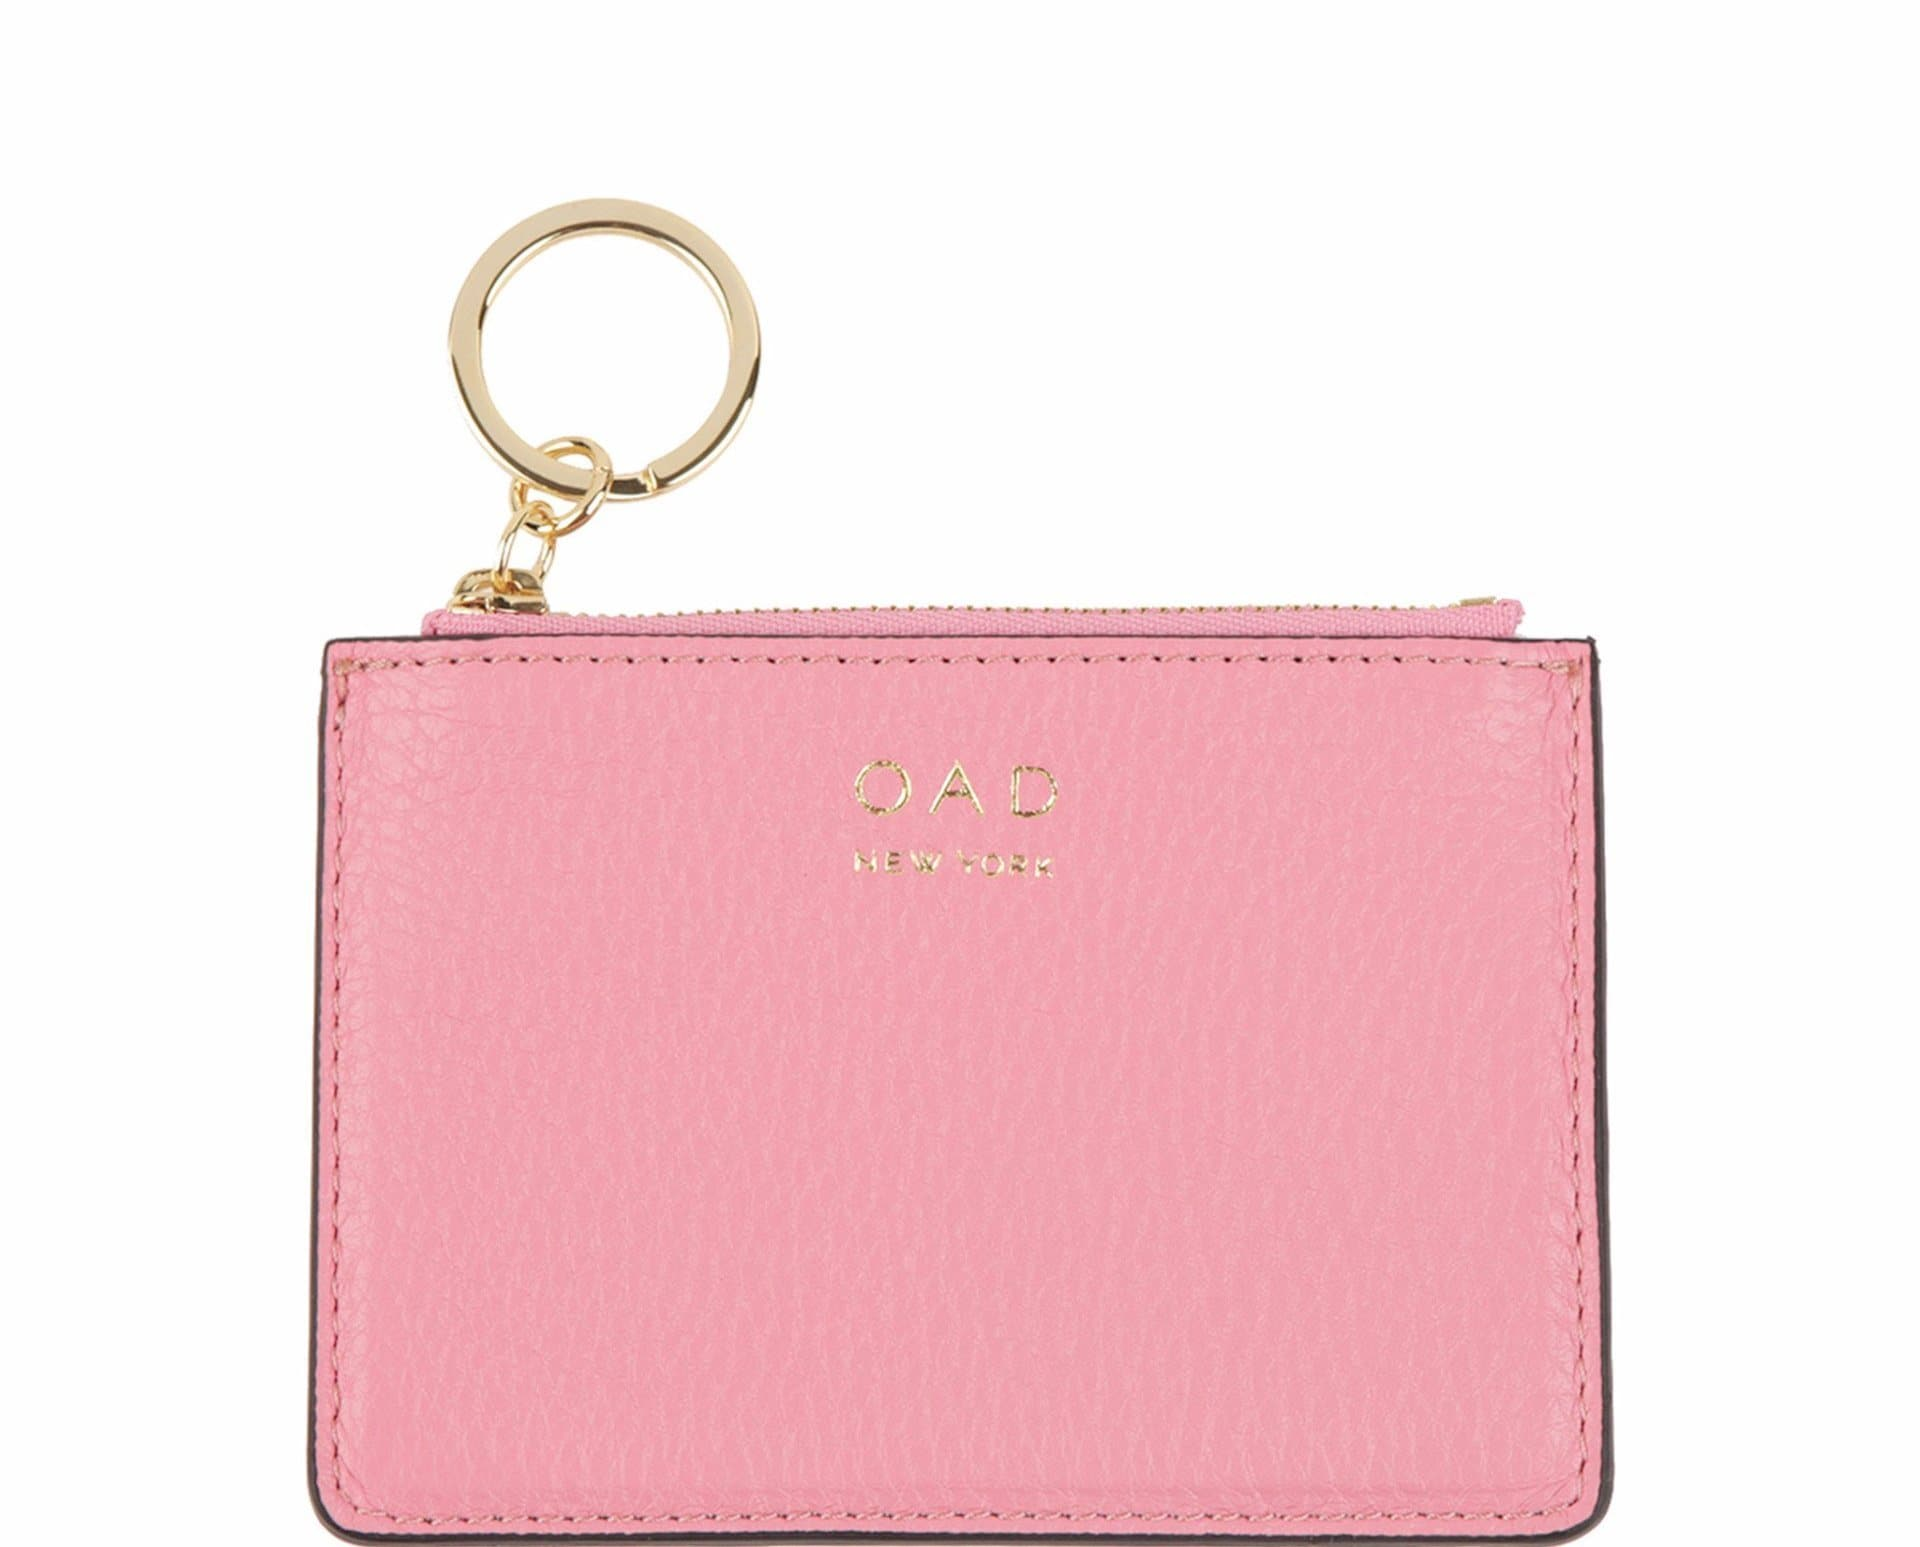 Mini Slim - Candy Pink - OAD NEW YORK - 1